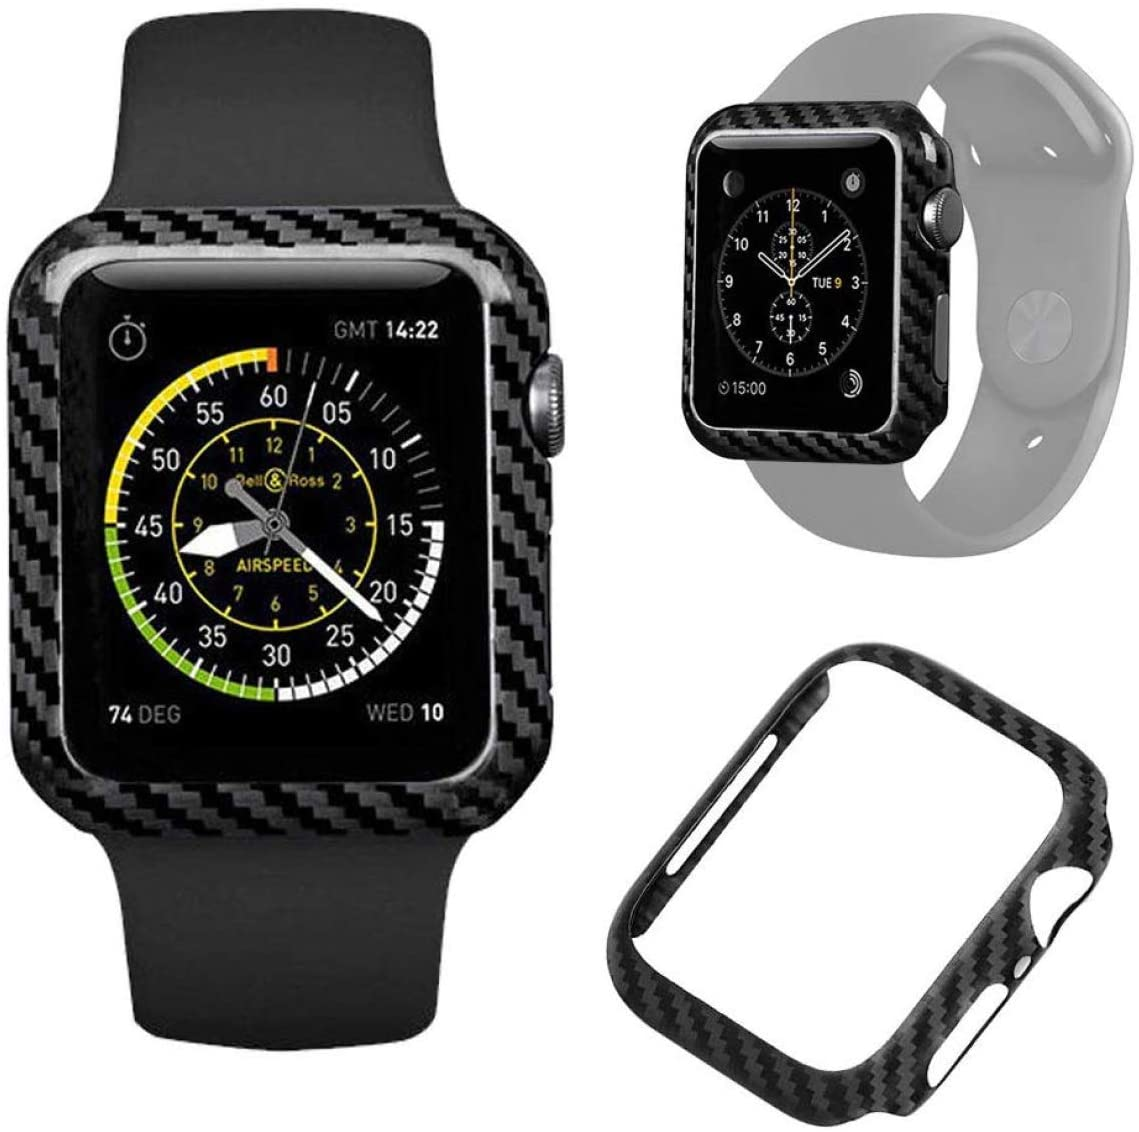 Safedome Carbon Fiber Luxury Watch Case for Apple Watch Series 5/Series 4, Shockproof Durable with Premium High-Gloss Twill Weave Finish (40)